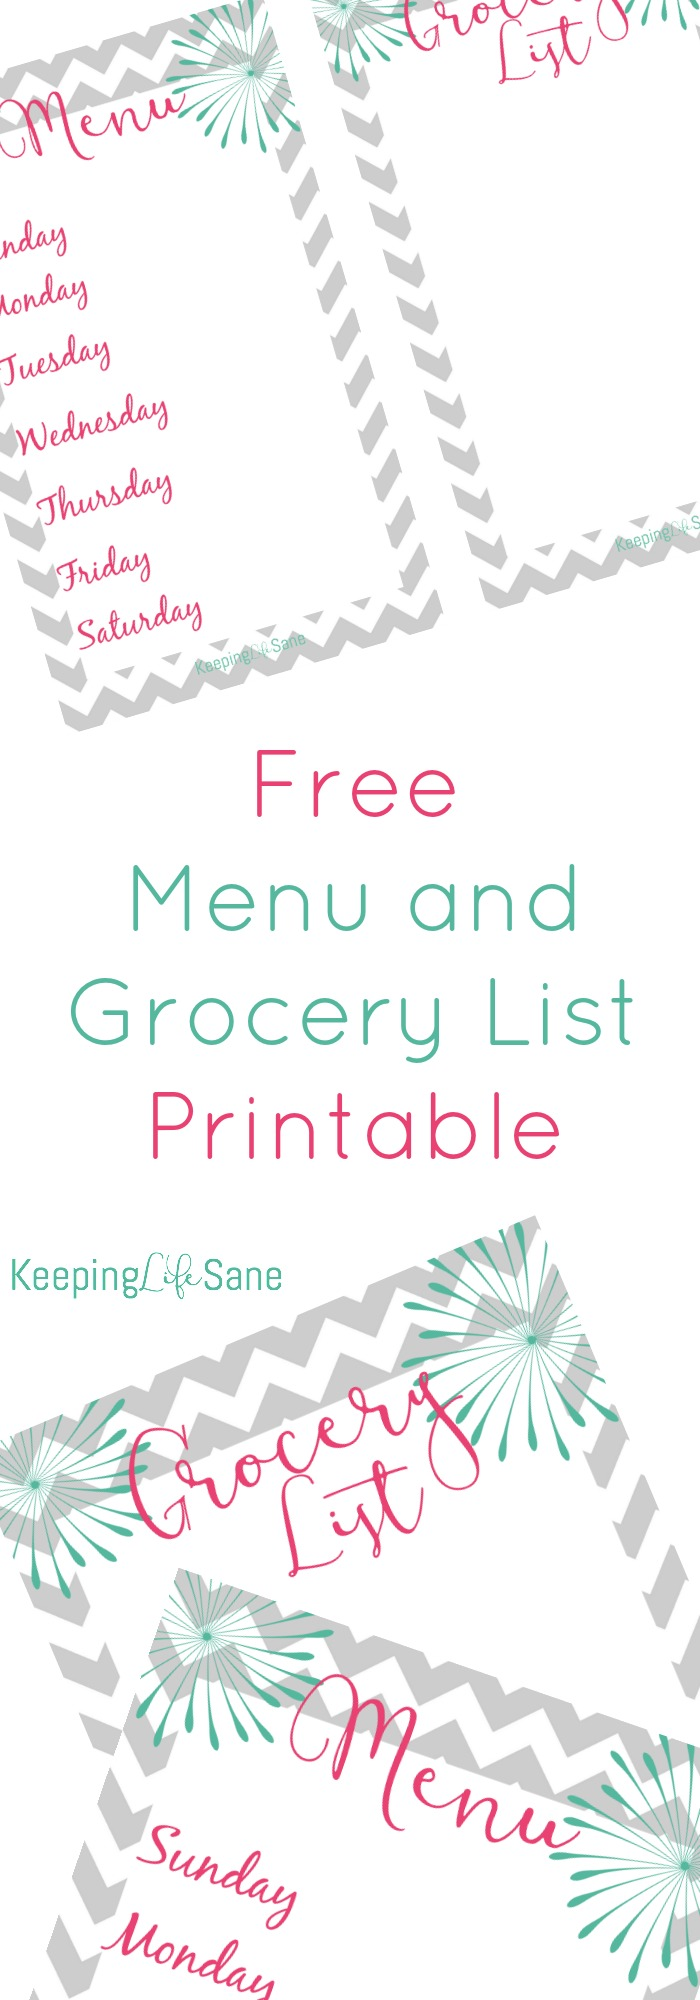 Here's a cute little menu and grocery list printable that you can download to your computer and print out when you need it.